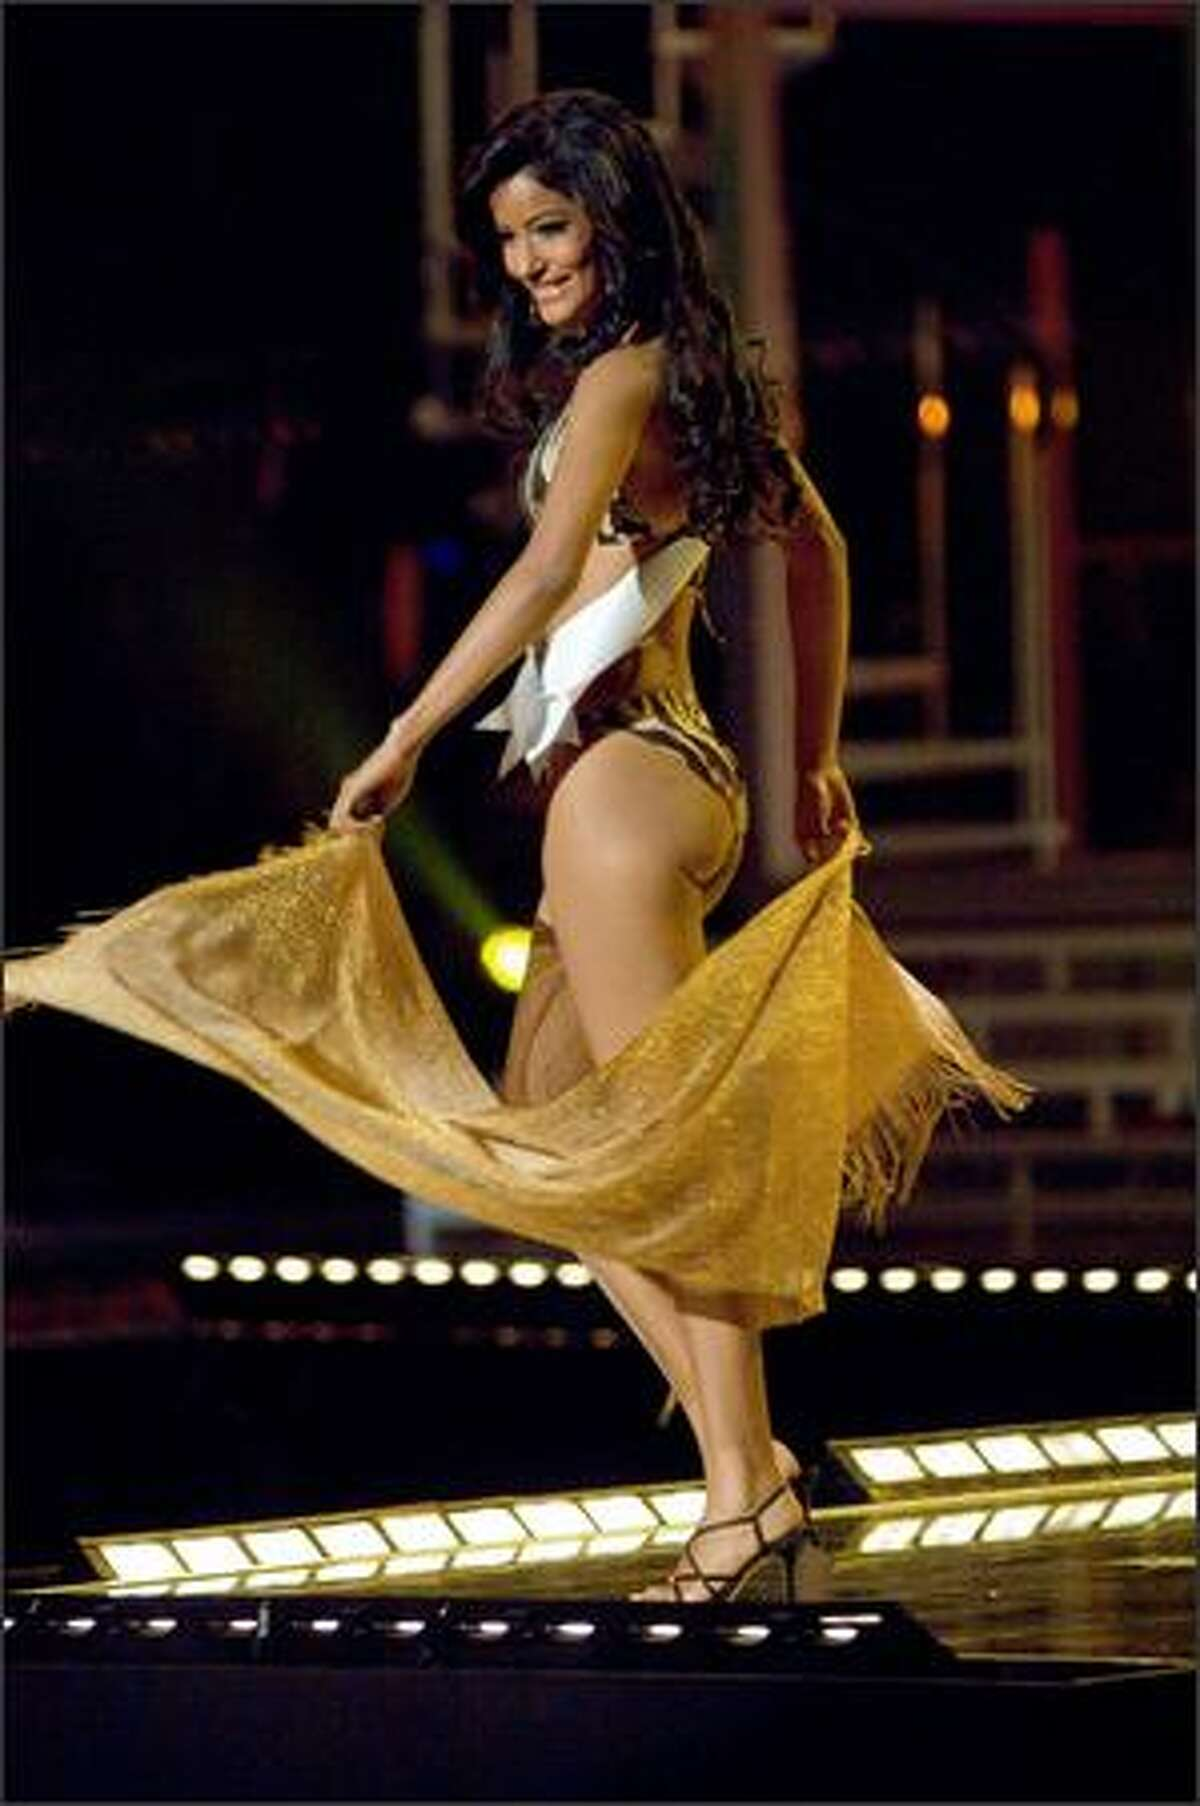 Massiel Taveras, Miss Dominican Republic 2007, competes in her BSC Swimwear Thailand swimsuit and Nina Shoes during the 2007 Miss Universe Presentation Show at Auditorio Nacional in Mexico City on May 23. During the Presentation Show, each contestant is judged by a preliminary panel of judges in individual interview, swimsuit and evening gown categories. The scores will be tallied and the top 15 contestants will be announced during the broadcast of the finals on May 28 (9 p.m. Pacific, tape-delayed).